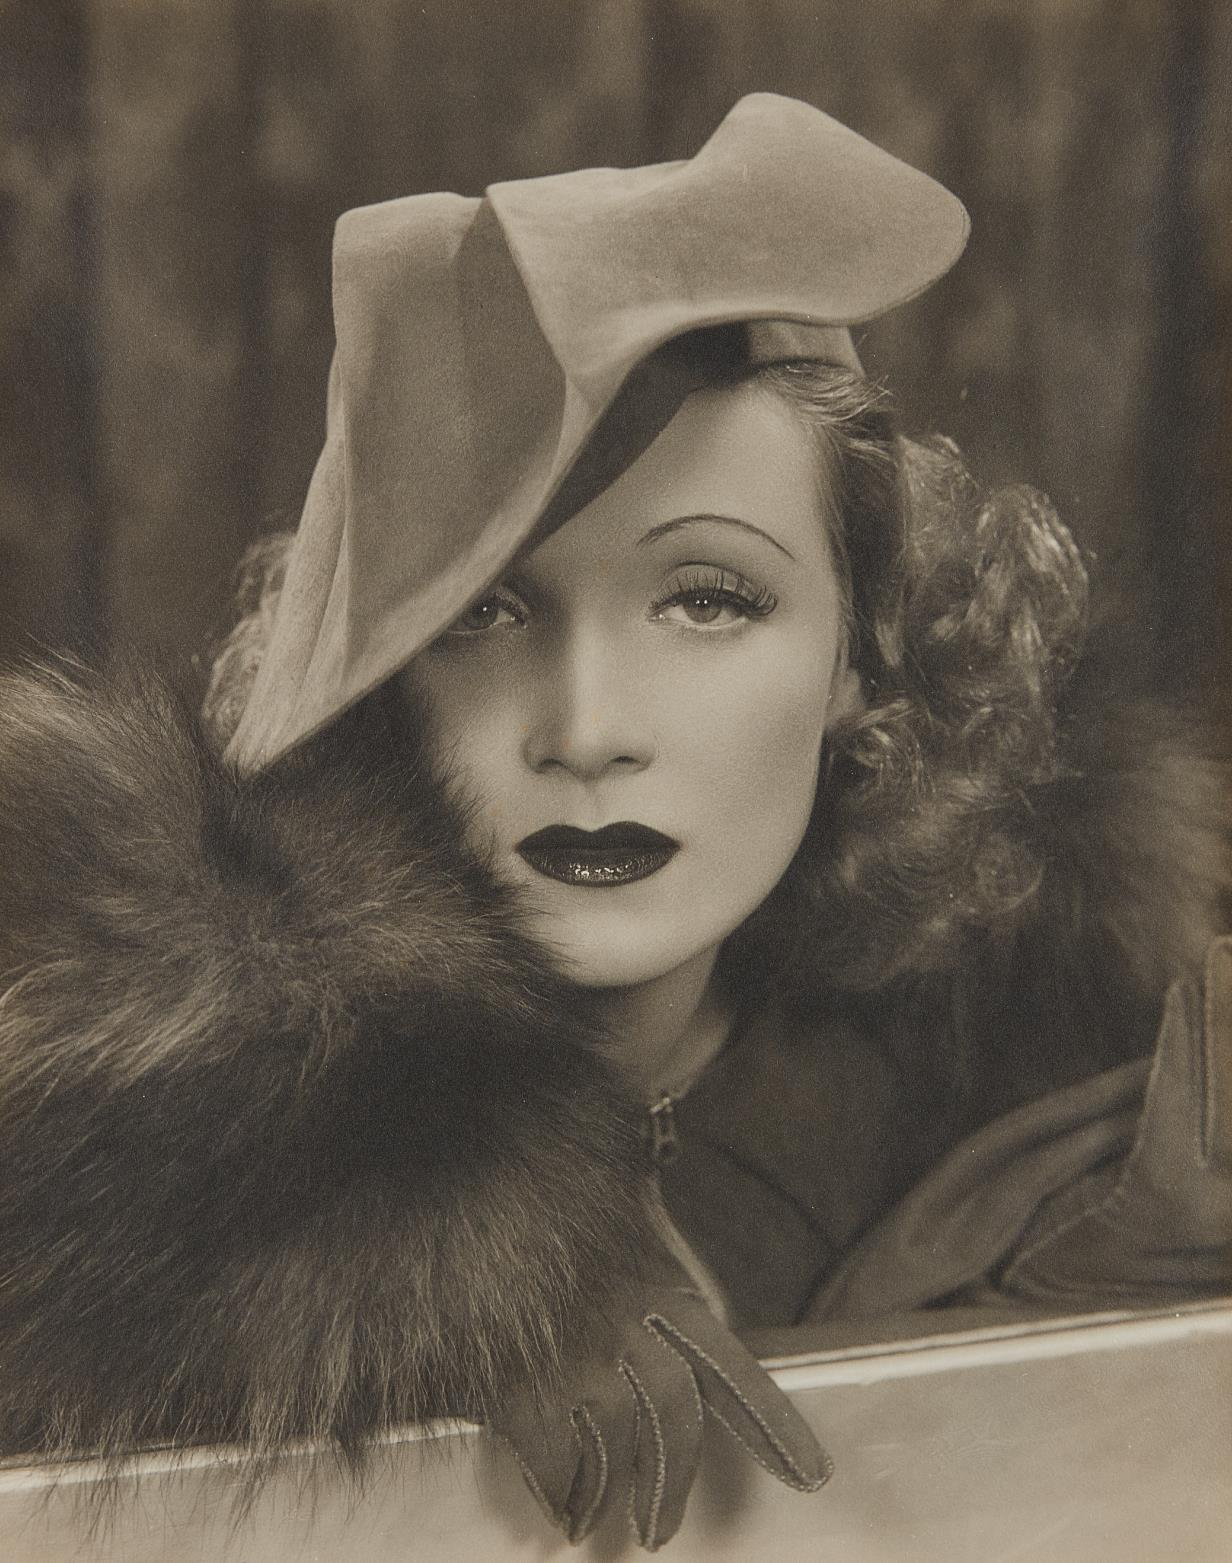 James N. Doolittle-Marlene Dietrich-1936